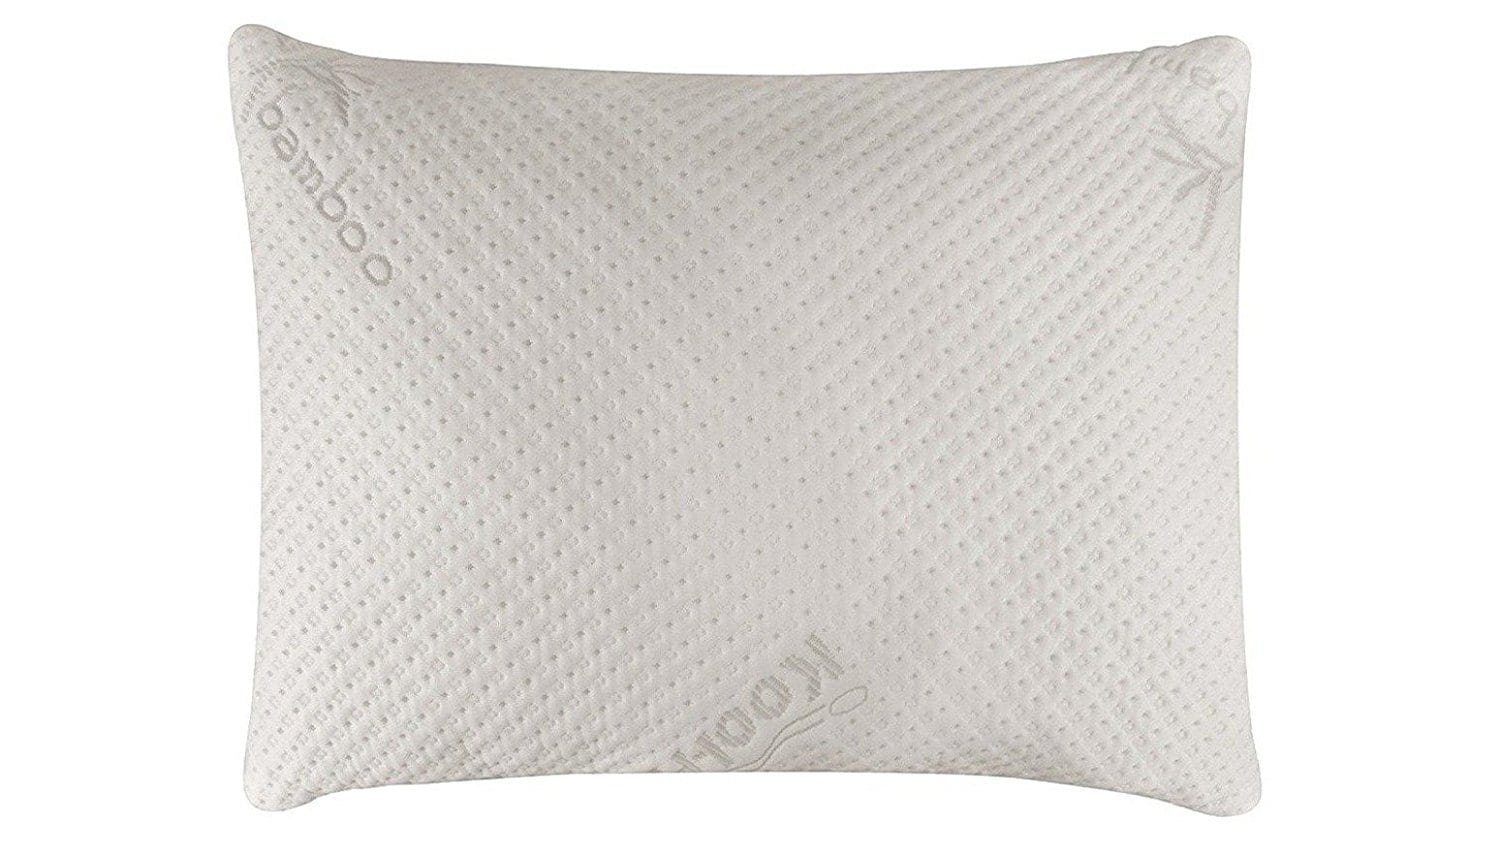 Bamboo Shredded Memory Foam Pillow Review